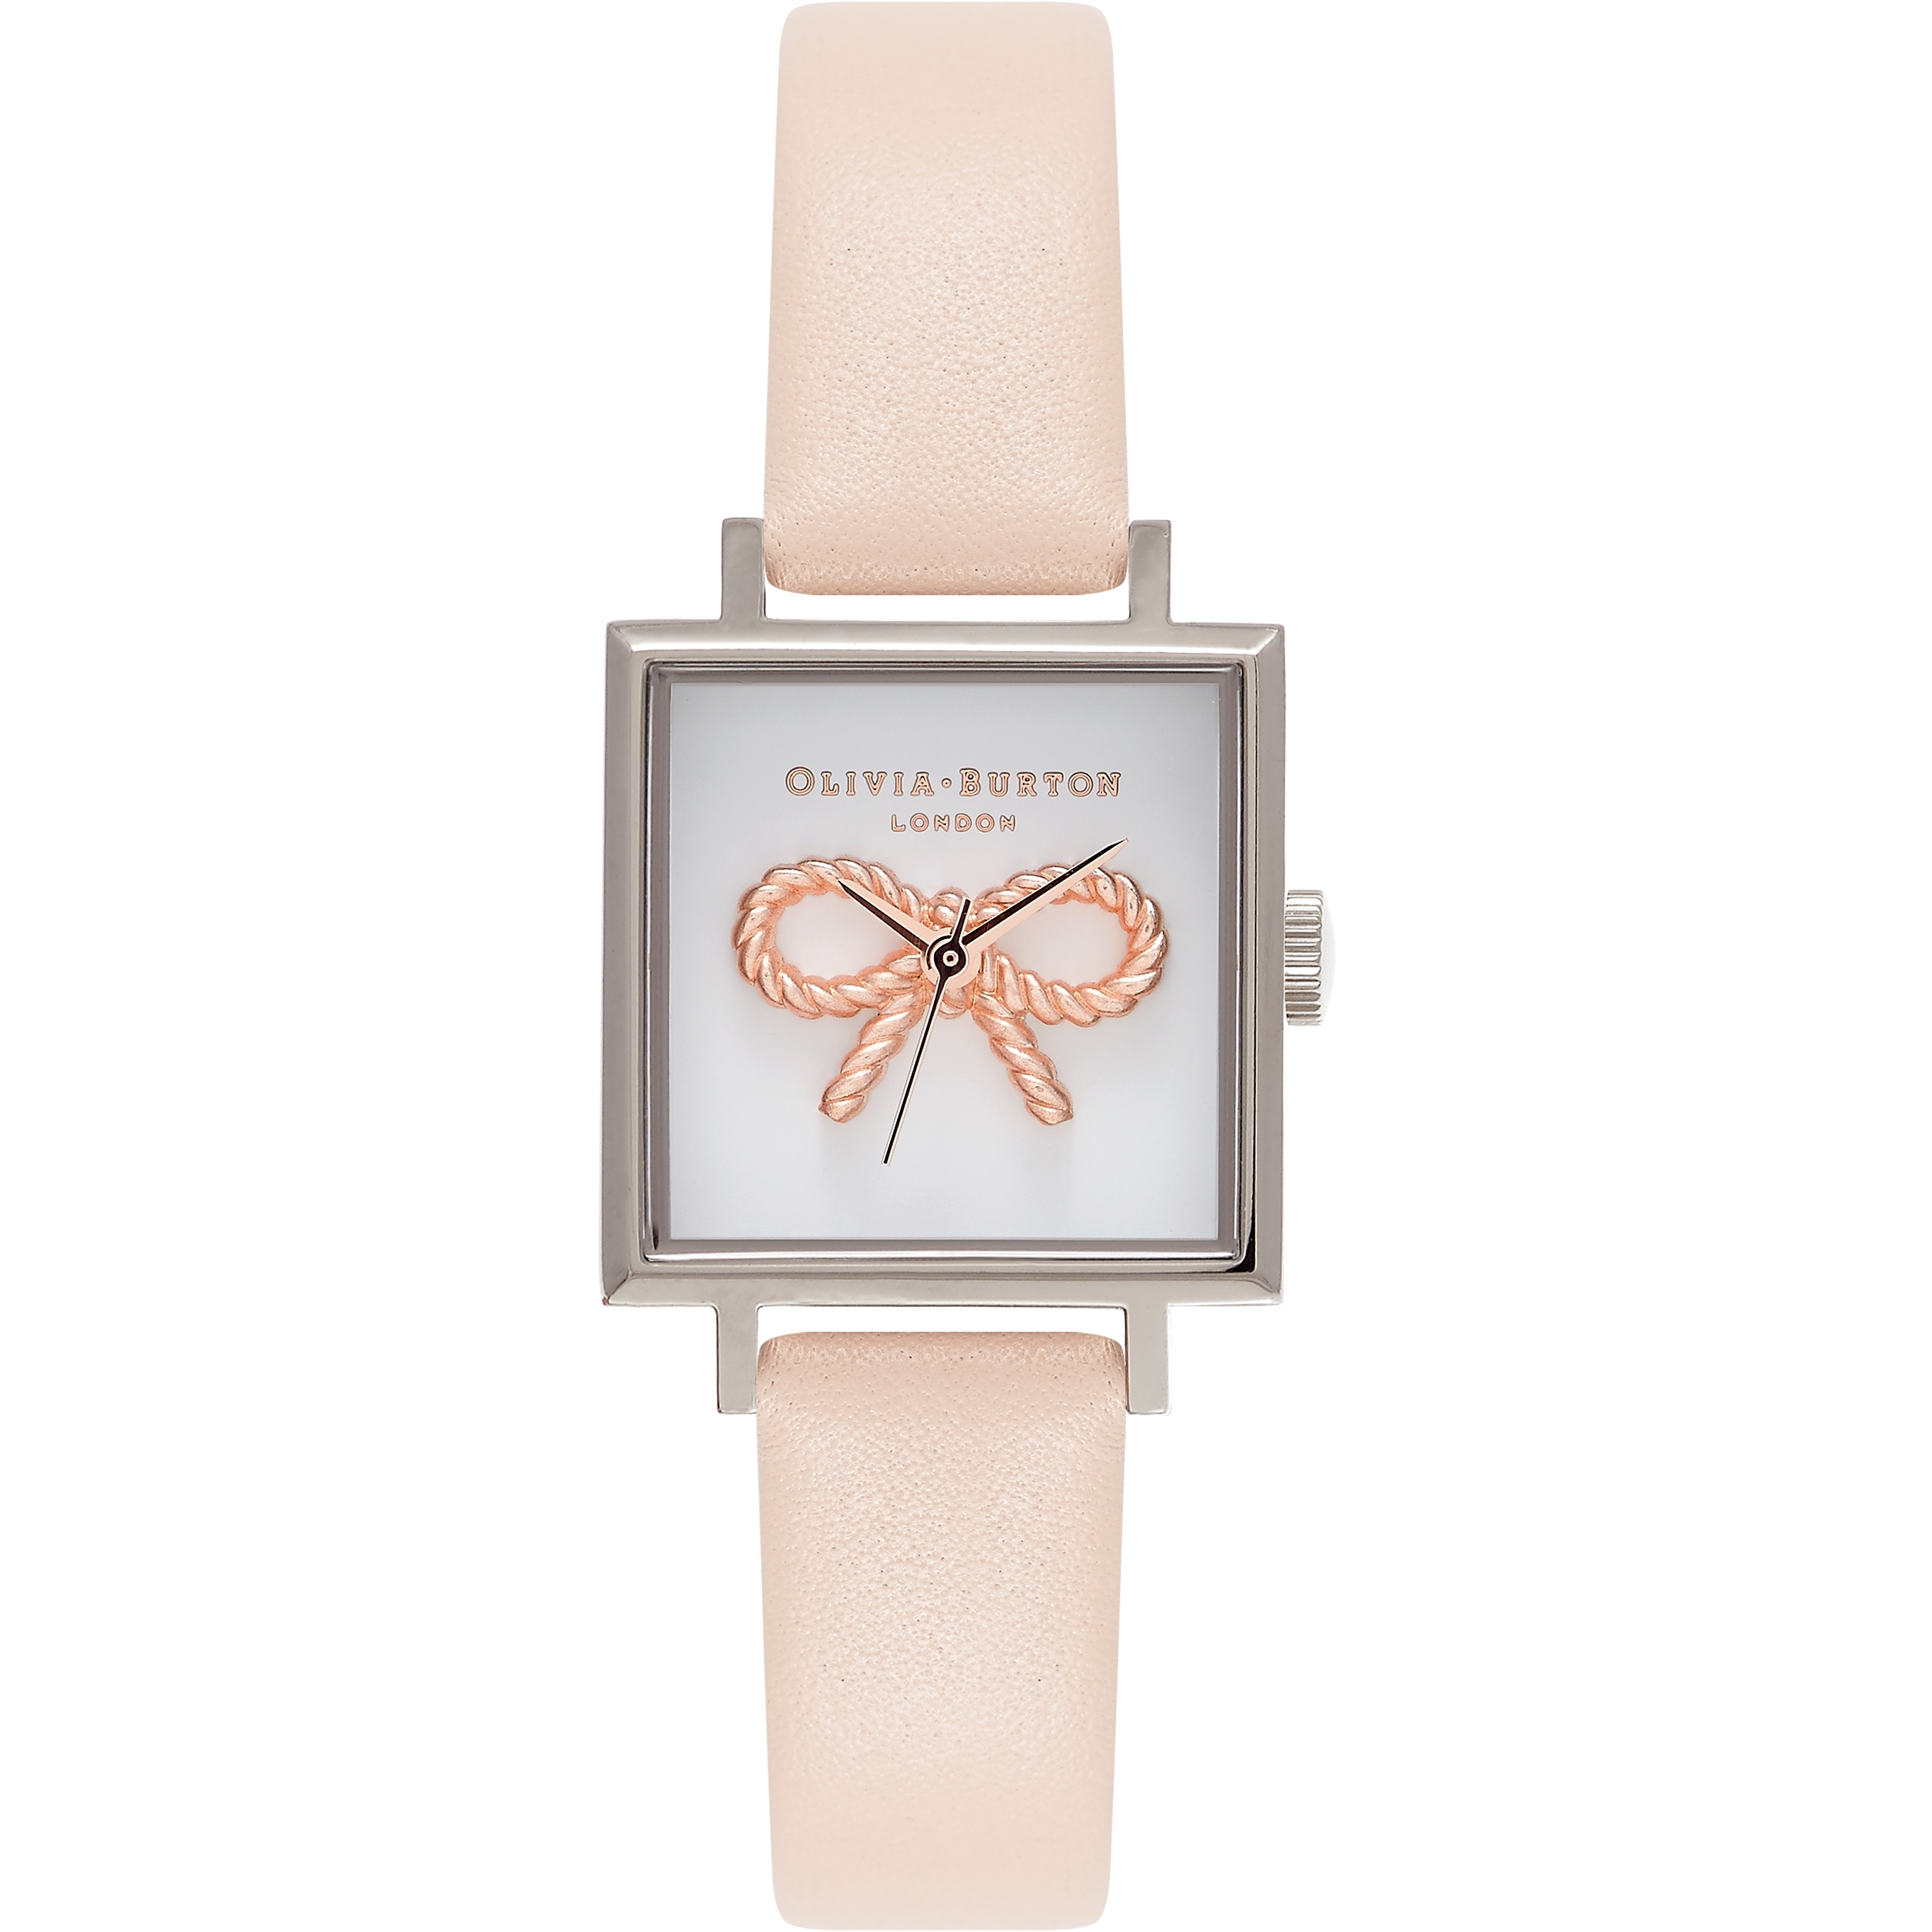 peach piece kulani original time products midnight watch classic rose watches image kinis gold